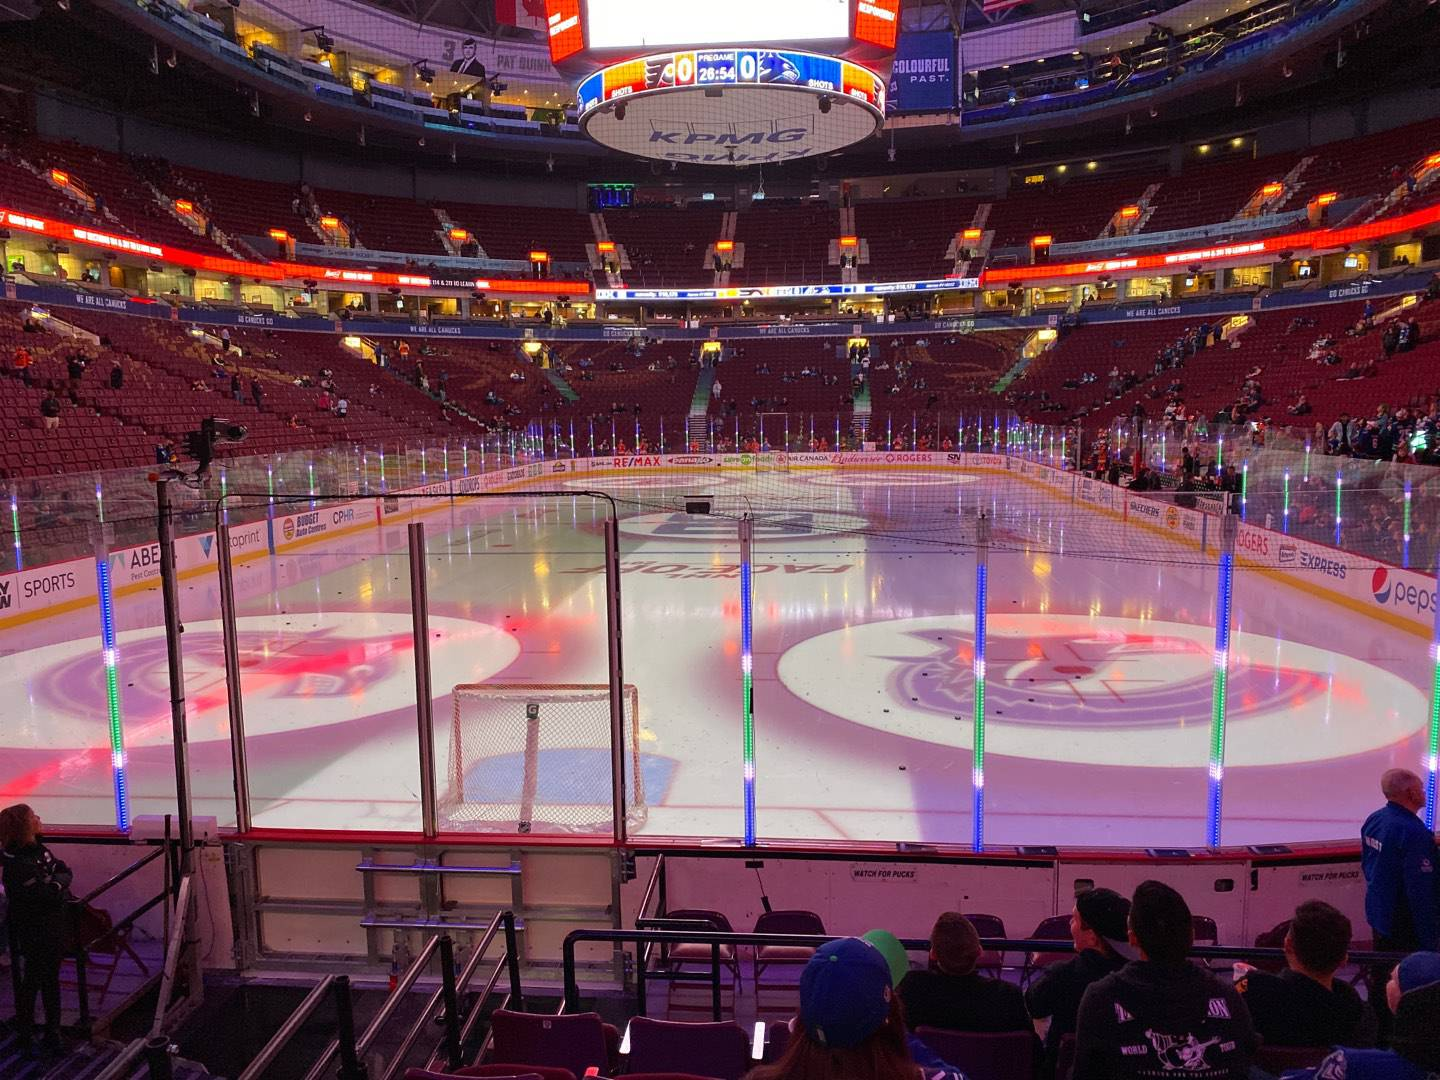 Rogers Arena Section 122 Row 9 Seat 105